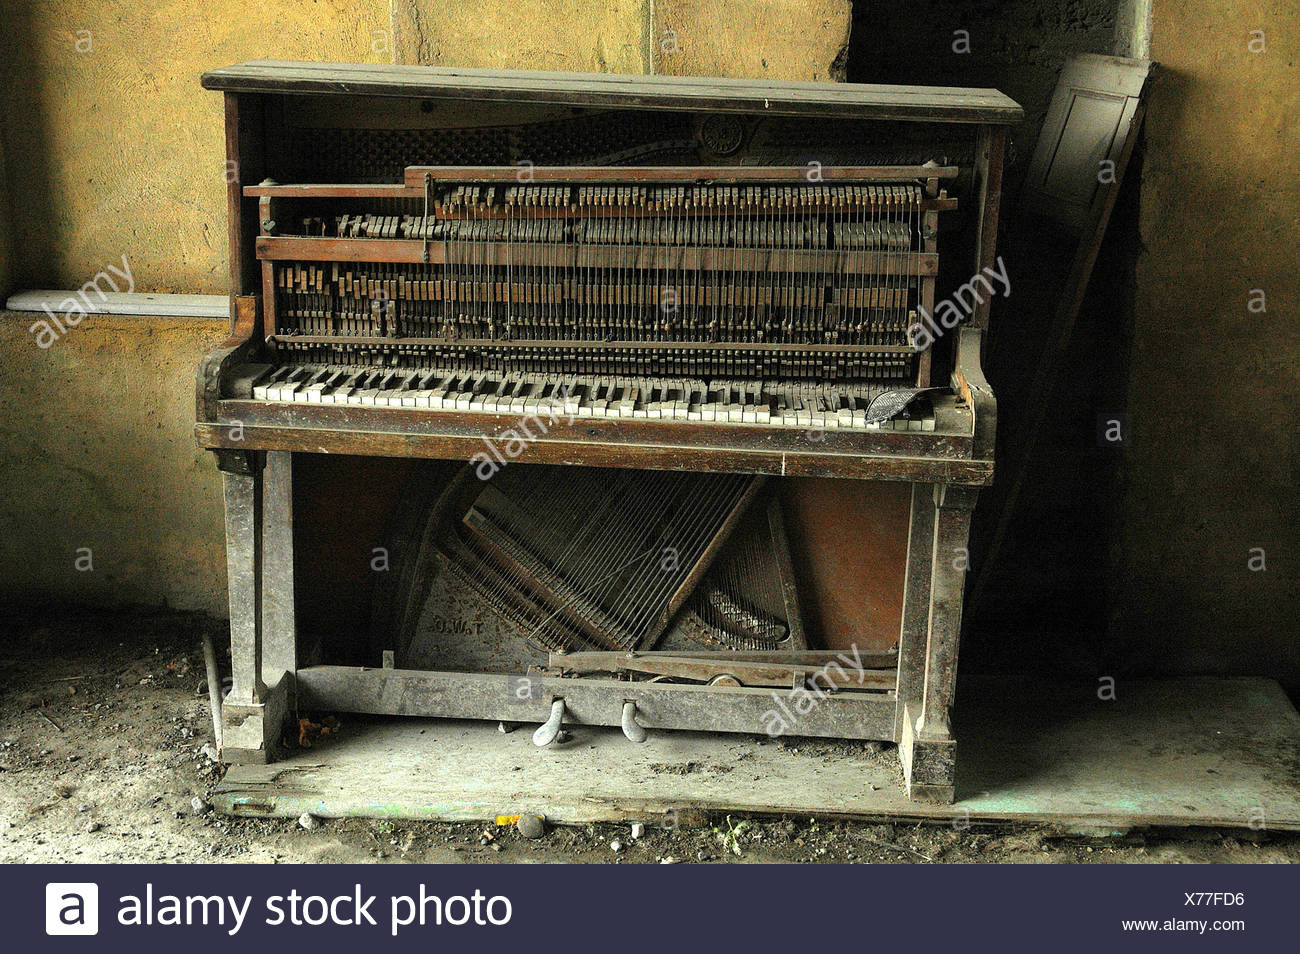 Abandoned piano and door & Abandoned piano and door Stock Photo: 279834274 - Alamy